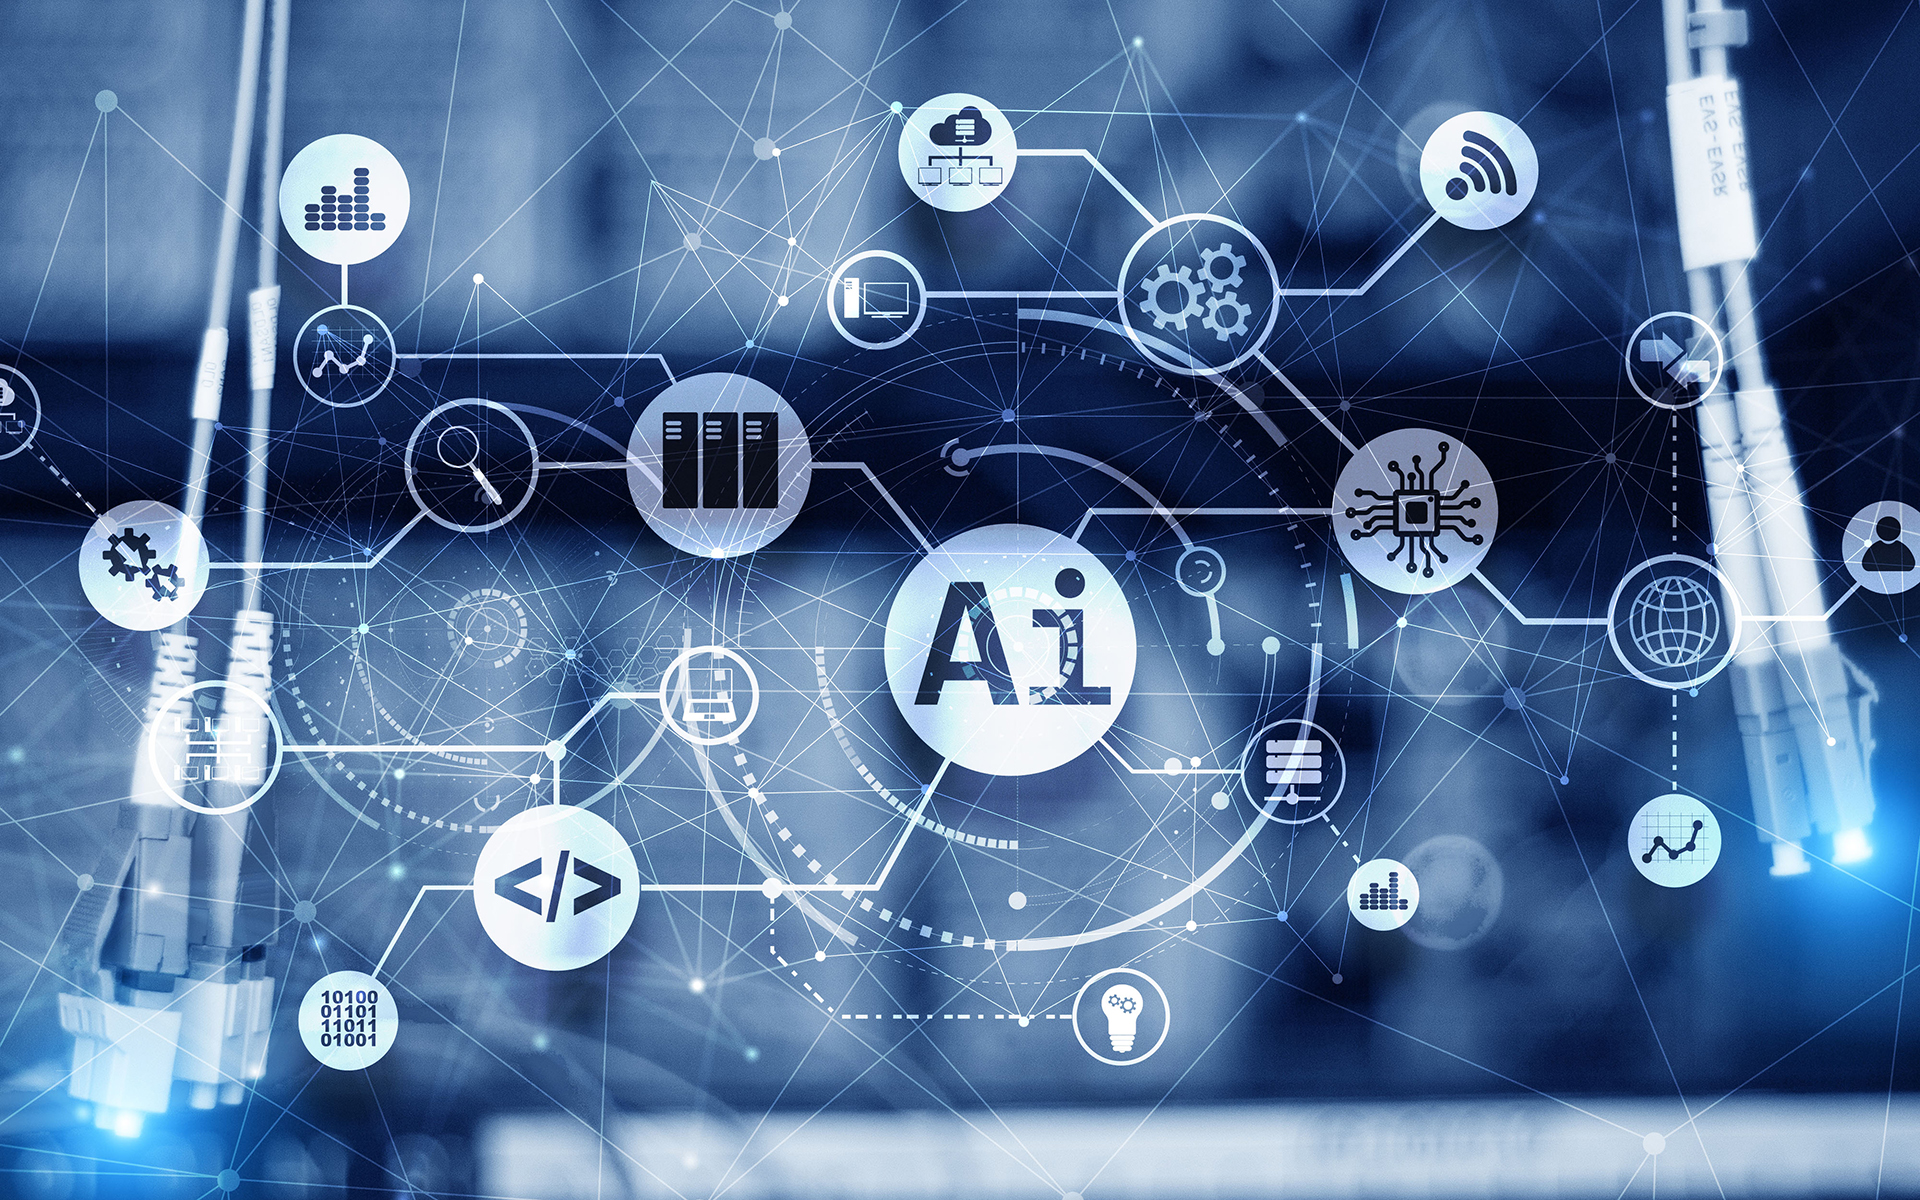 SSG Artificial Intelligence and Business Intelligence